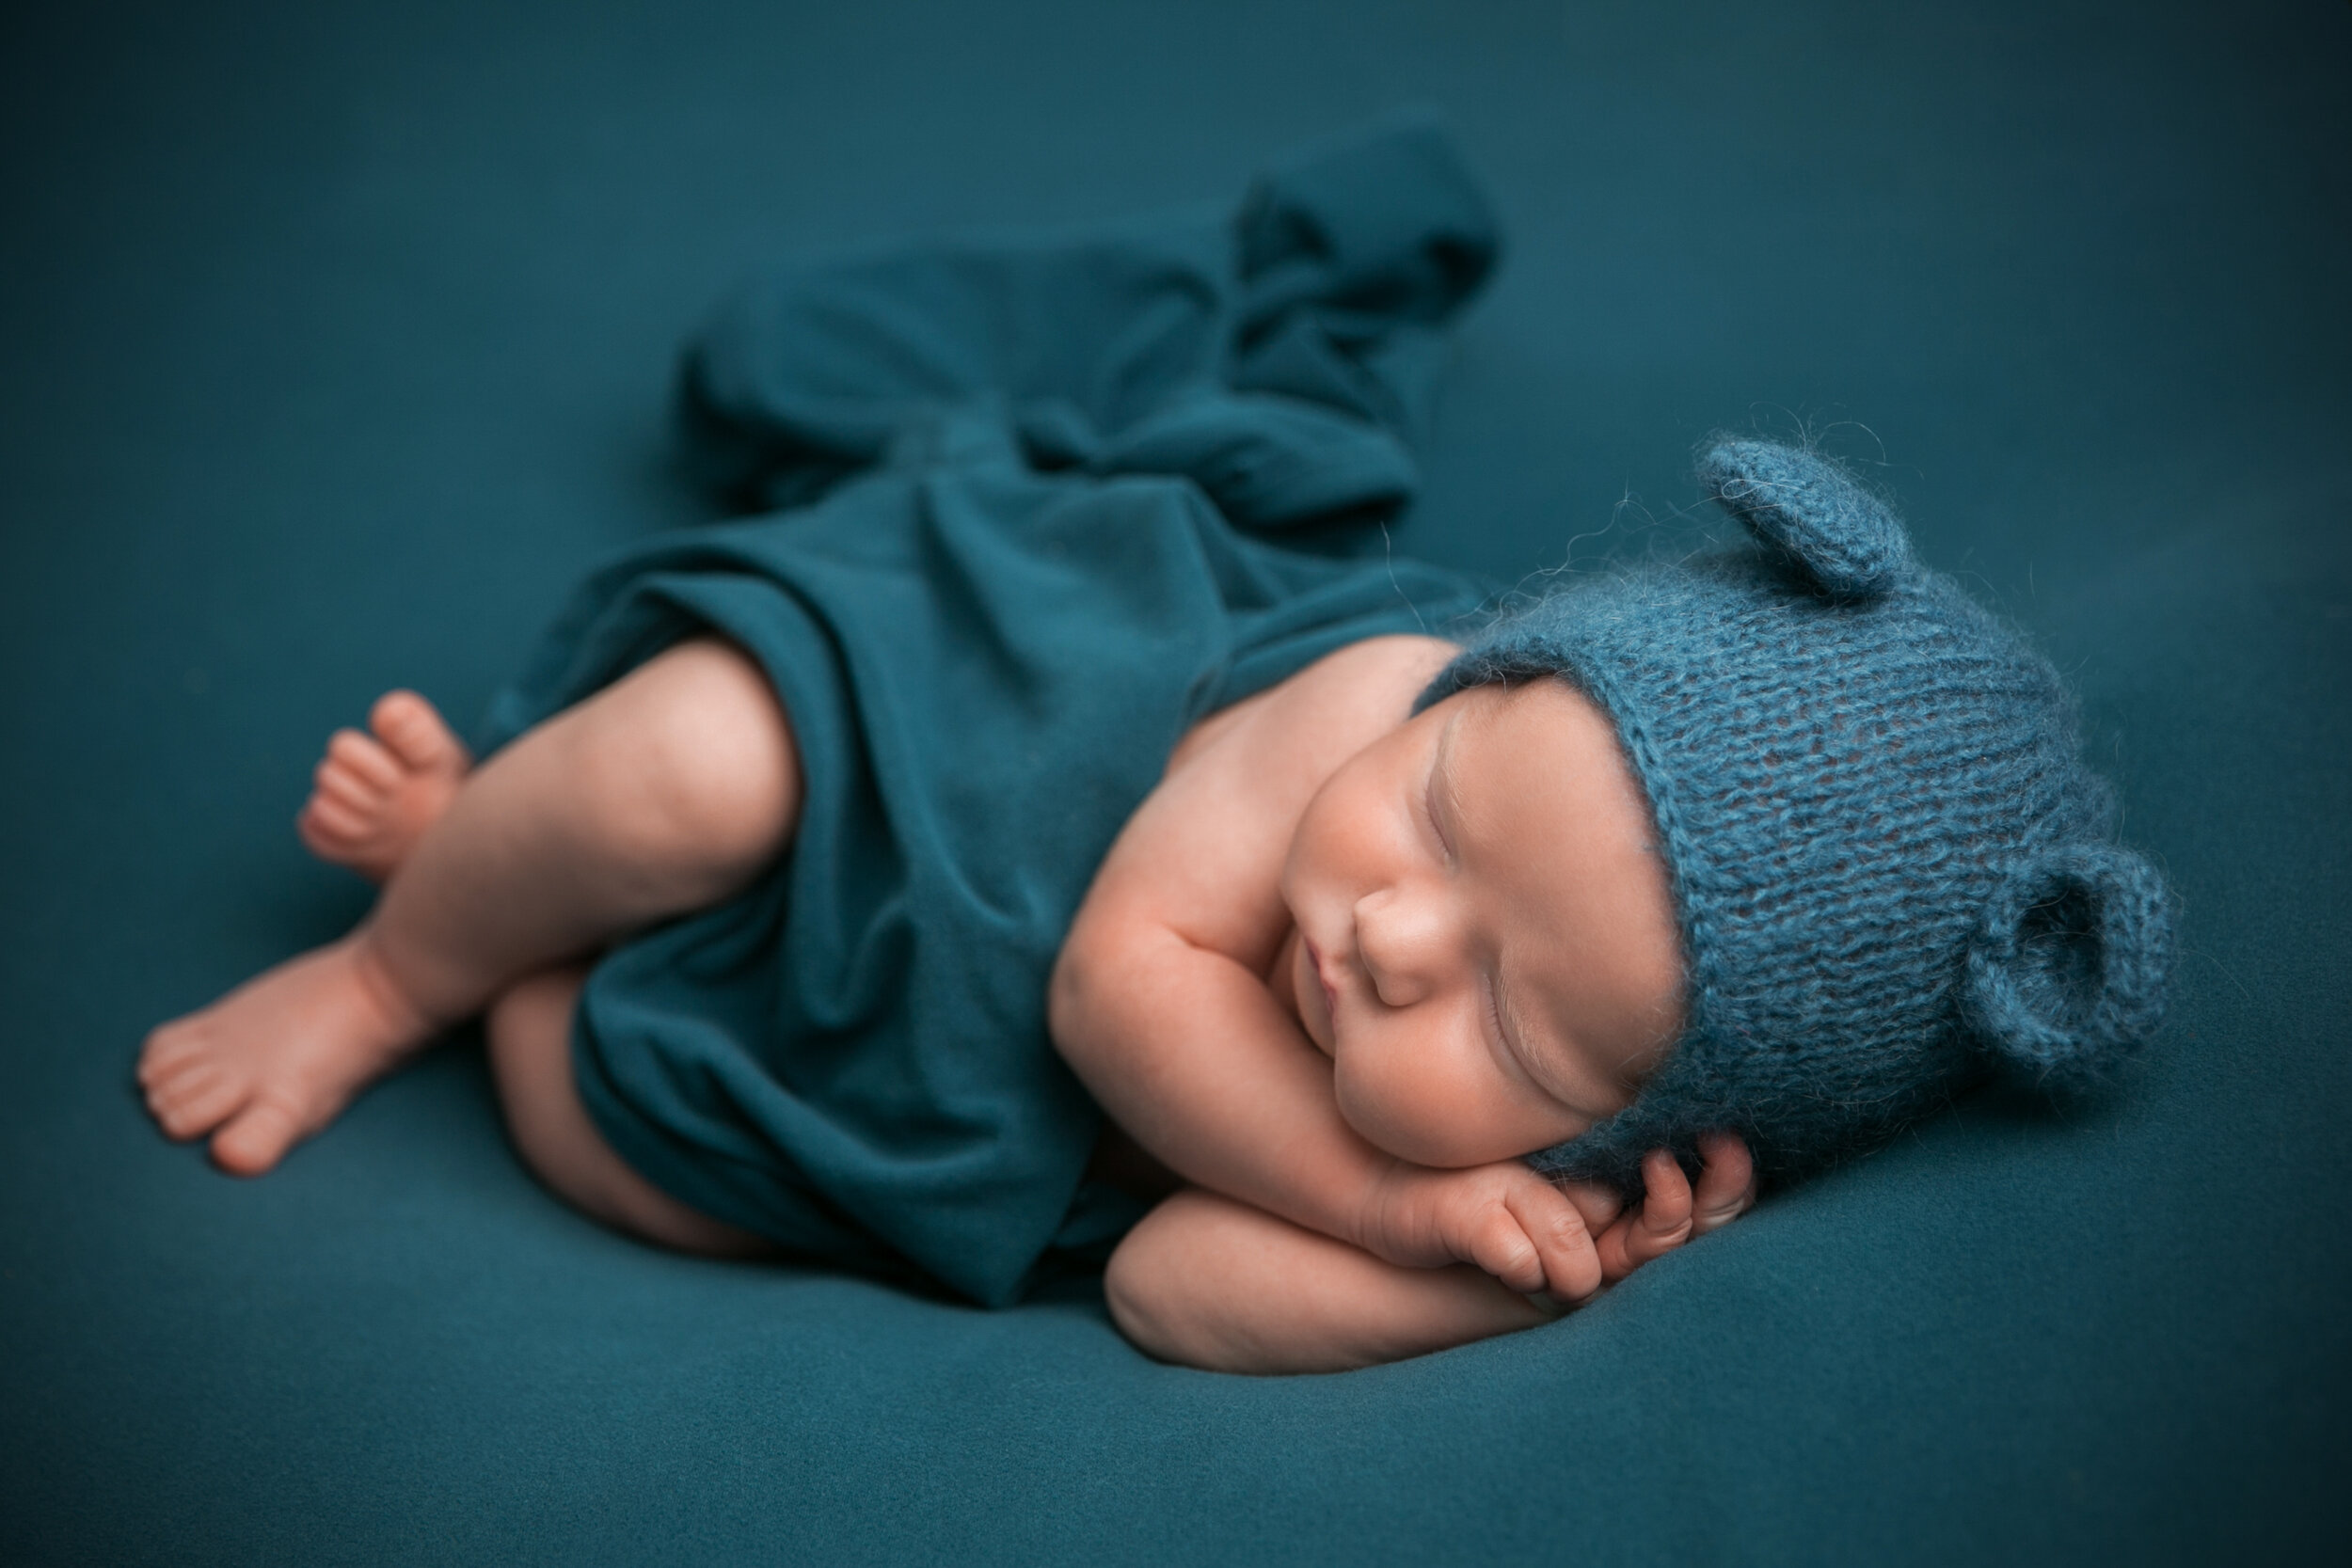 040_McDonald_Drew_newborn_0M7C5138-edit.jpg